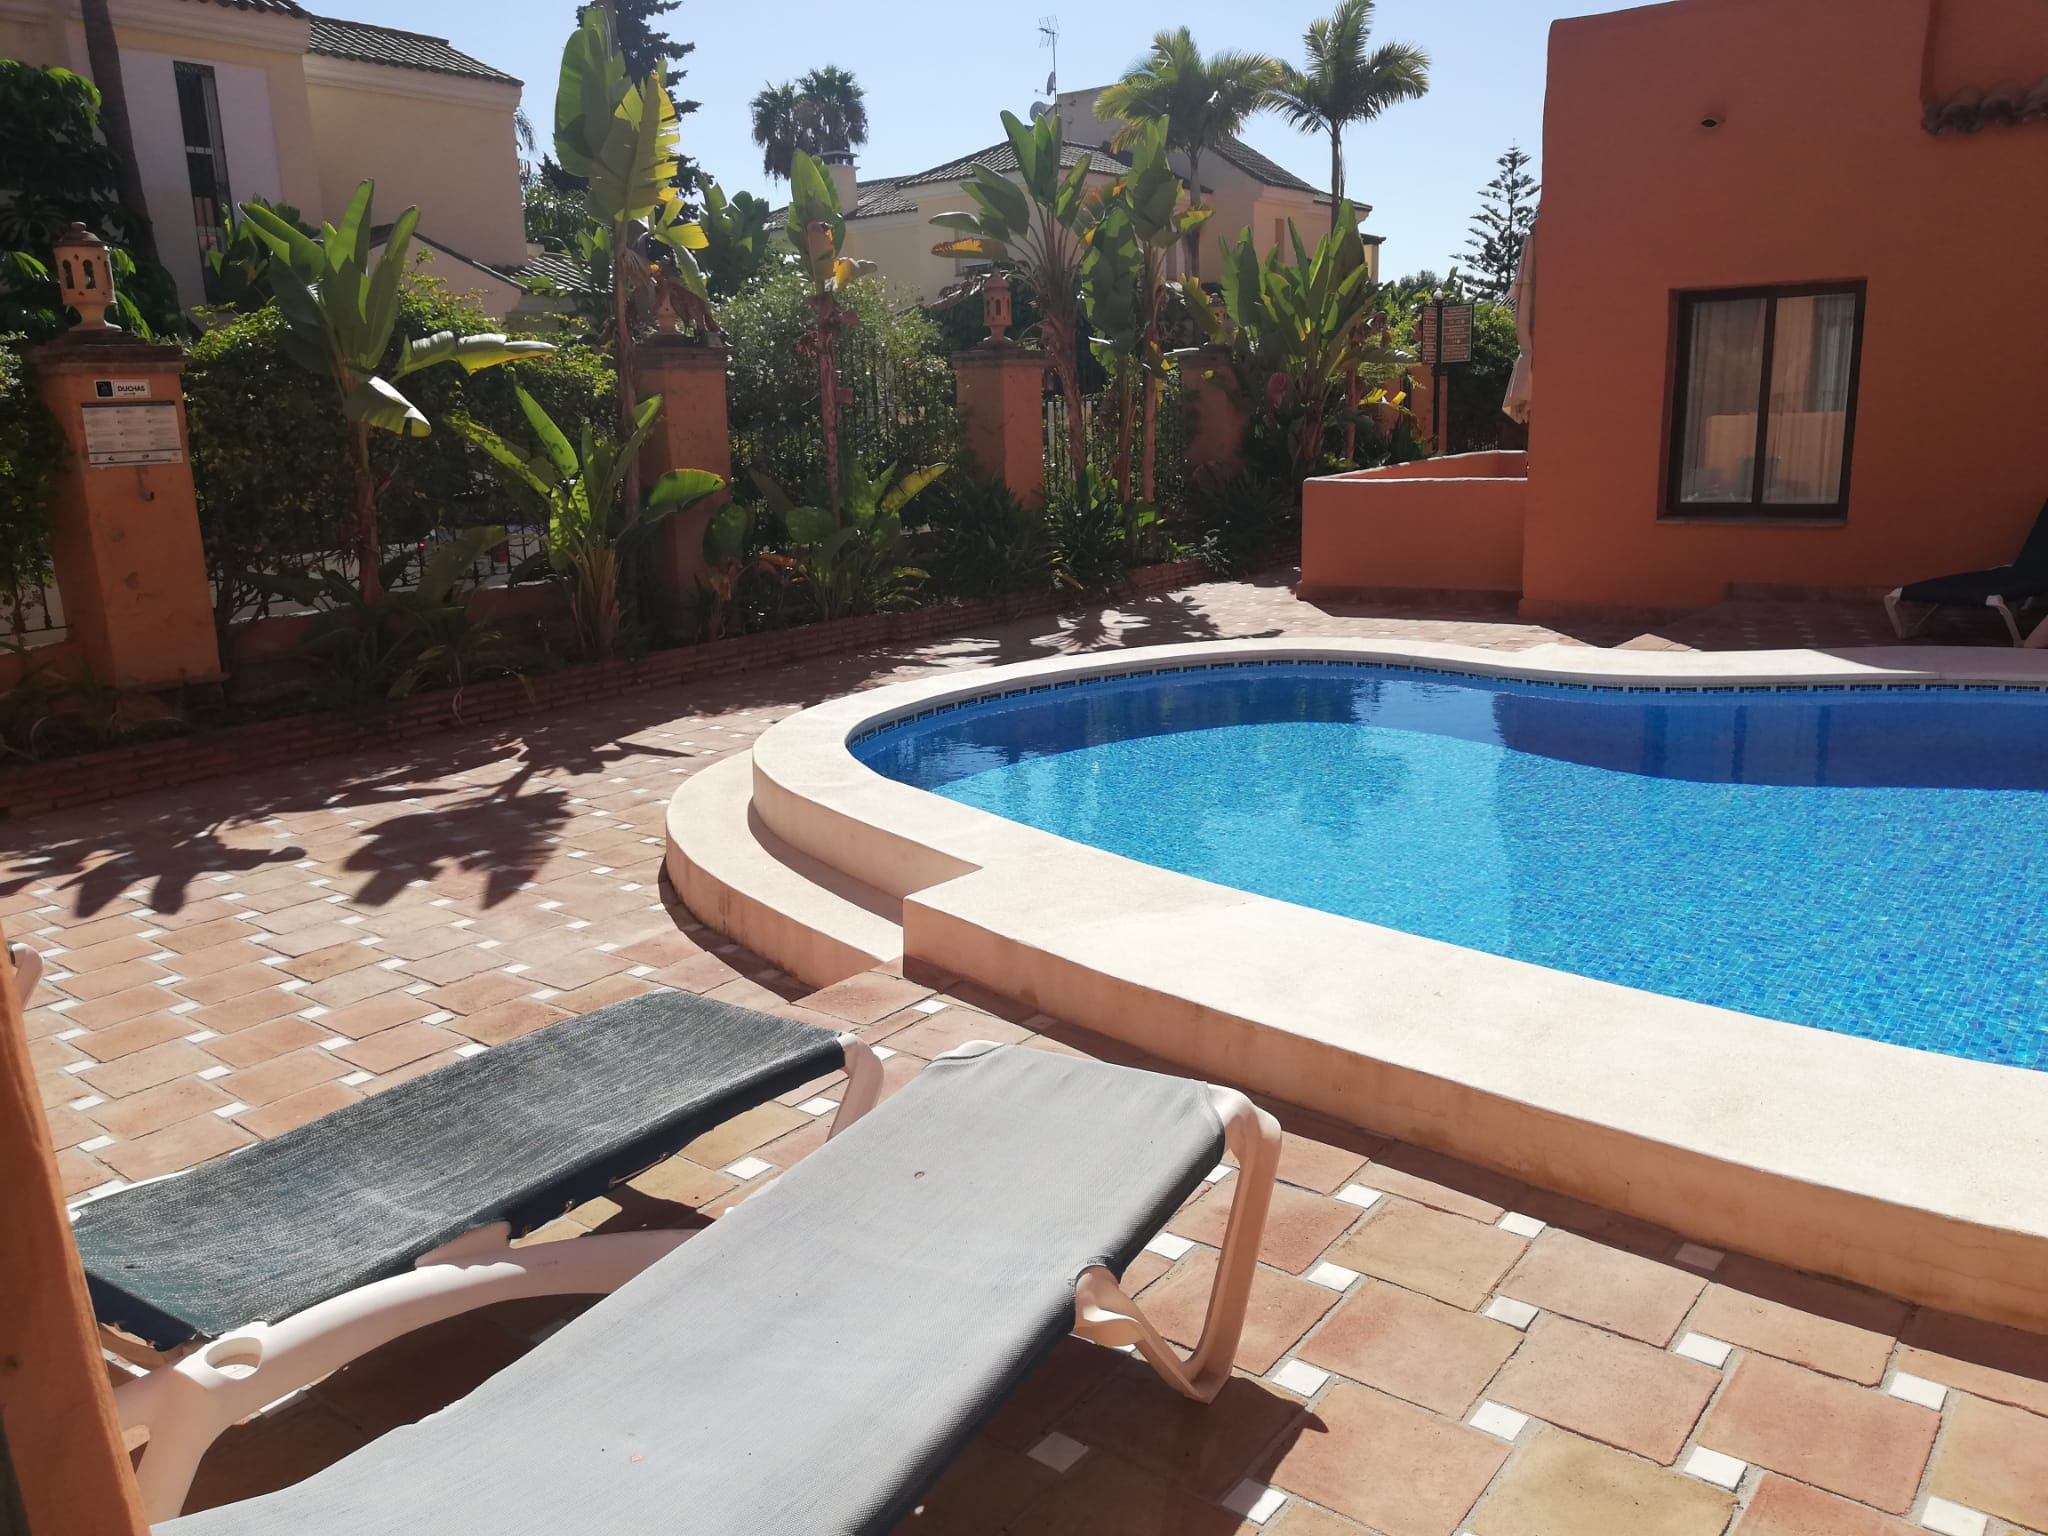 Studio for rent in Cancelada near the beach - mibgroup.es